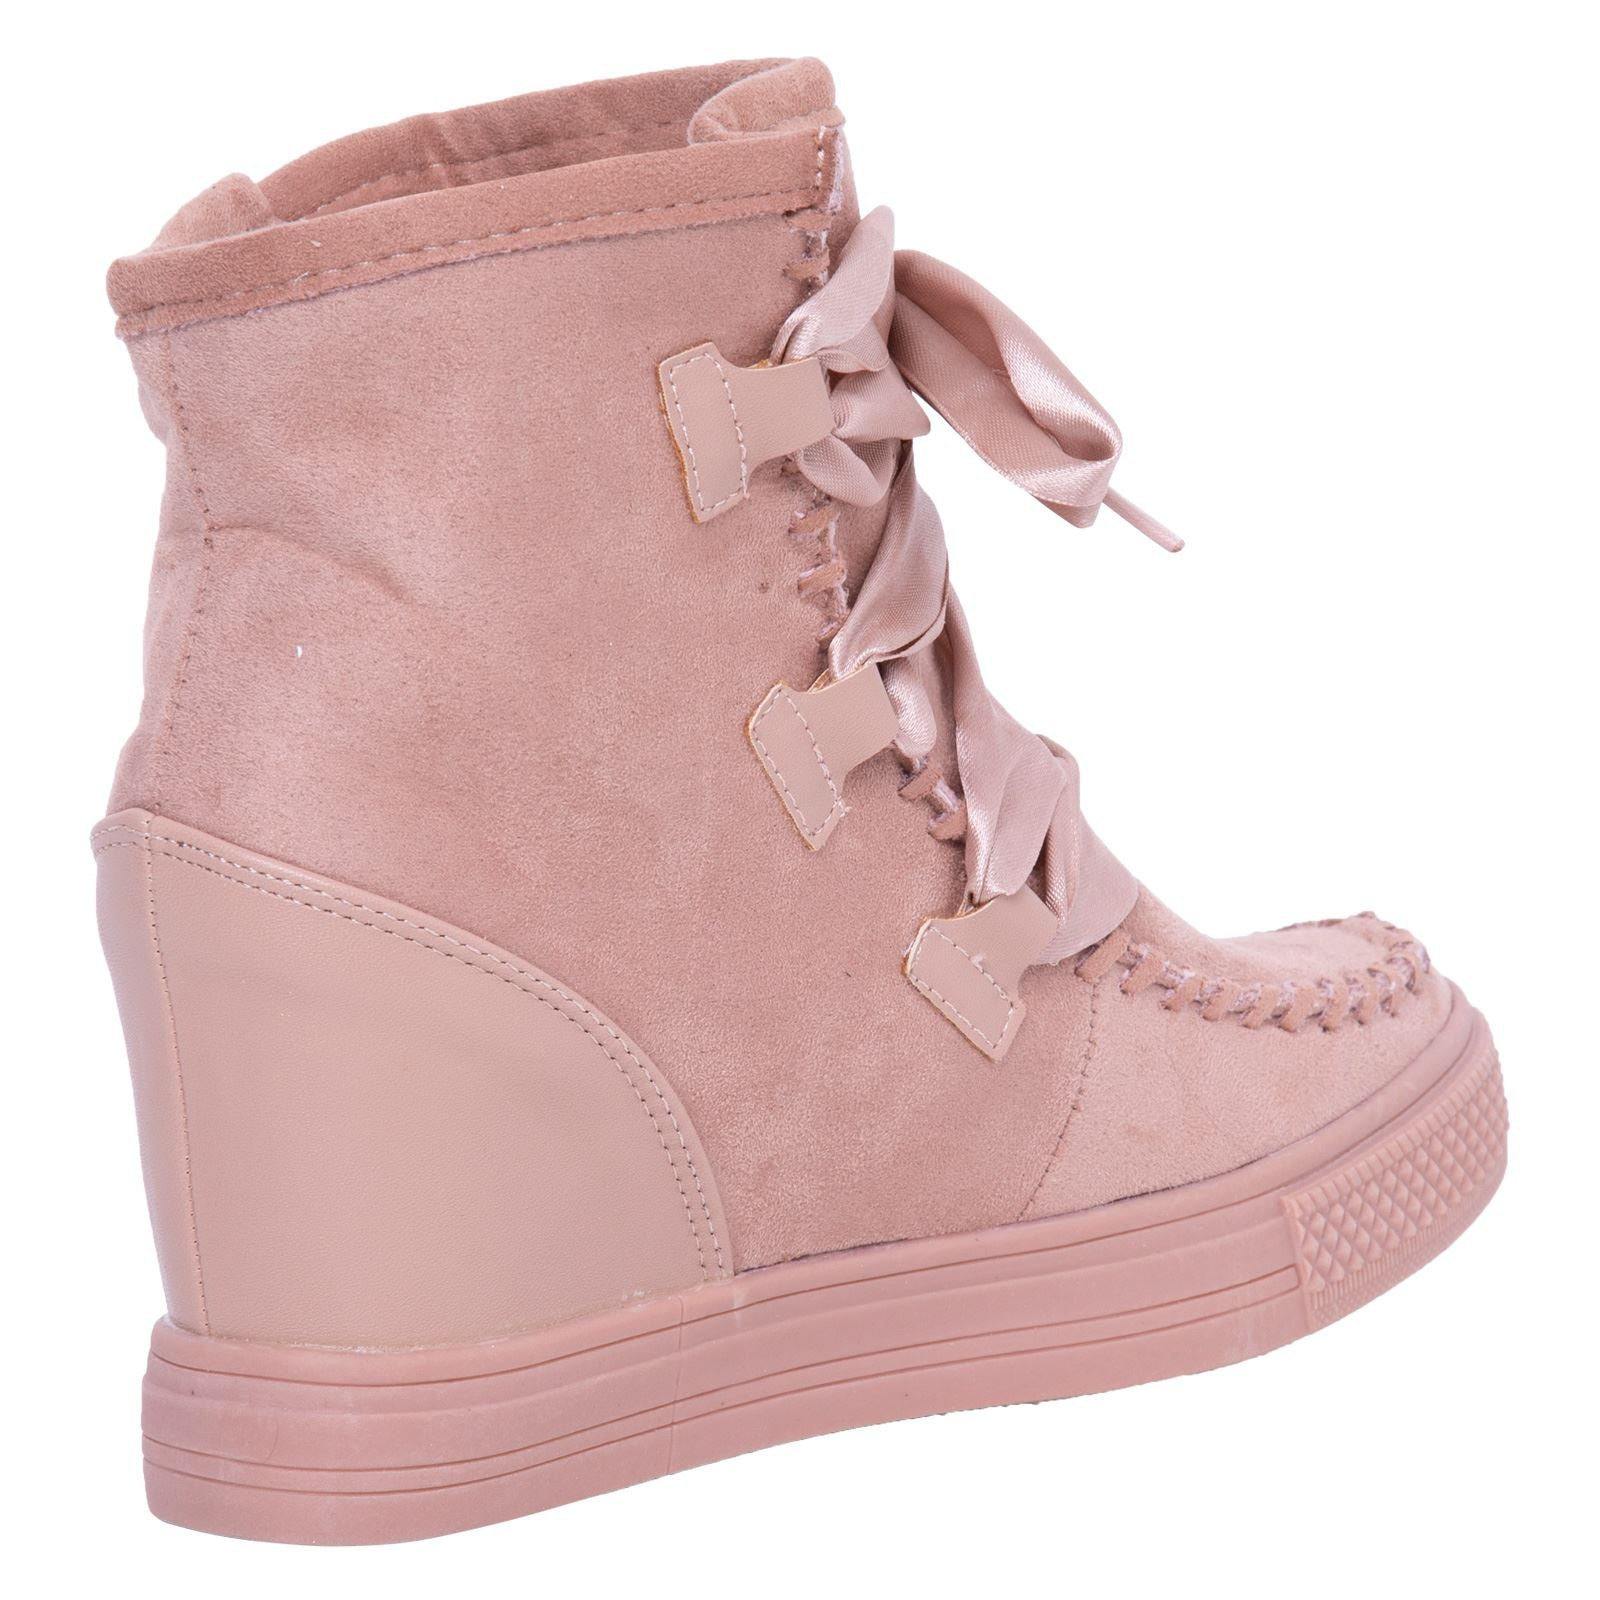 Kacee Stylish Wedge Trainers in Pink With Ribbon - Feet First Fashion